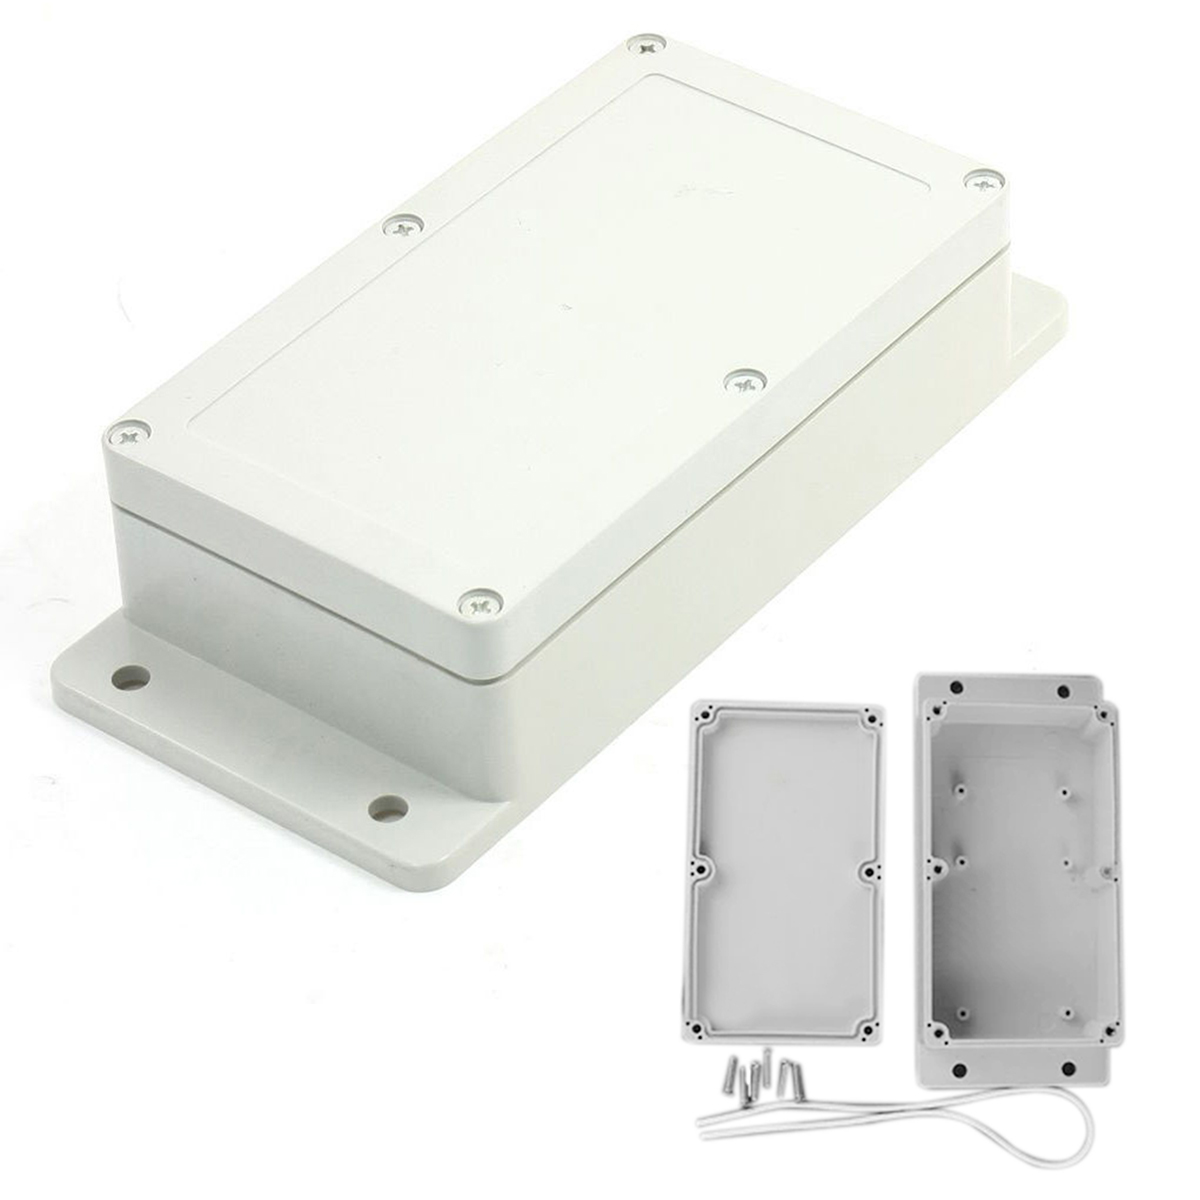 Mayitr Waterproof Enclosure Power Junction Box White Plastic Electronic Project Enclosure Case 158x90x46mm white waterproof plastic enclosure box electric power junction case 158mmx90mmx46mm with 6pcs screws